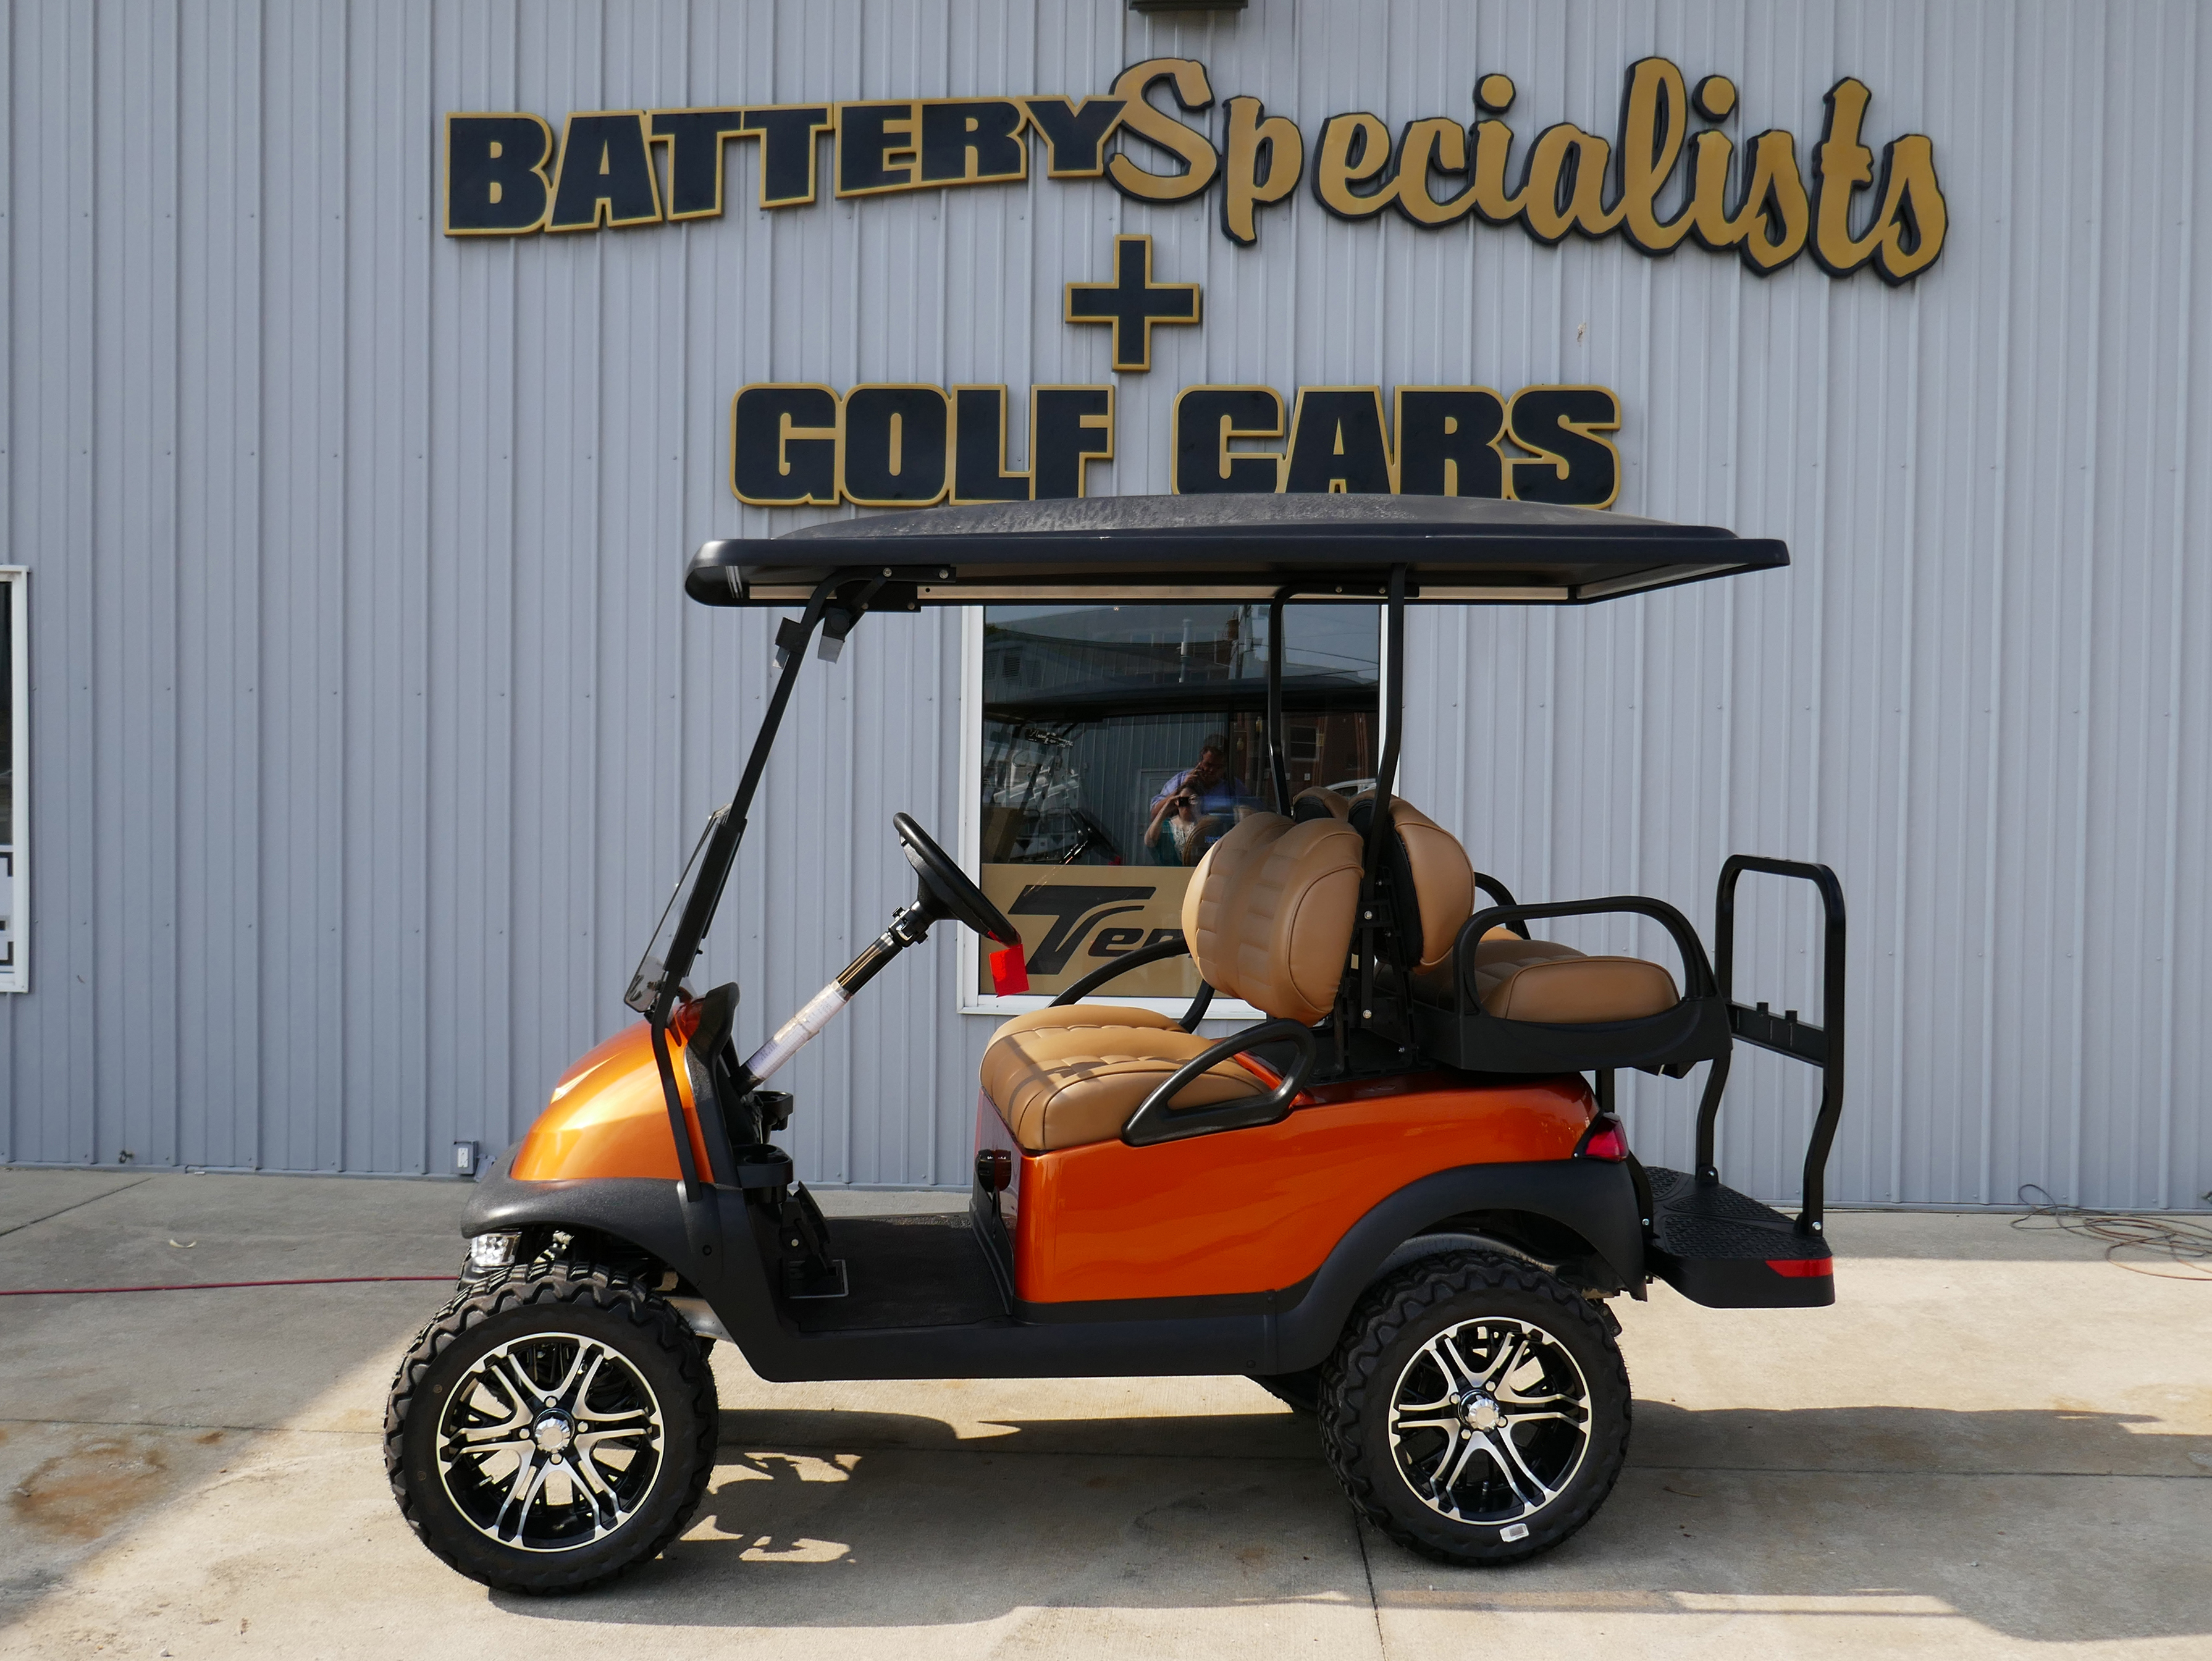 2014 METALLIC ORANGE Club Car Precedent Electric Golf Car TBD